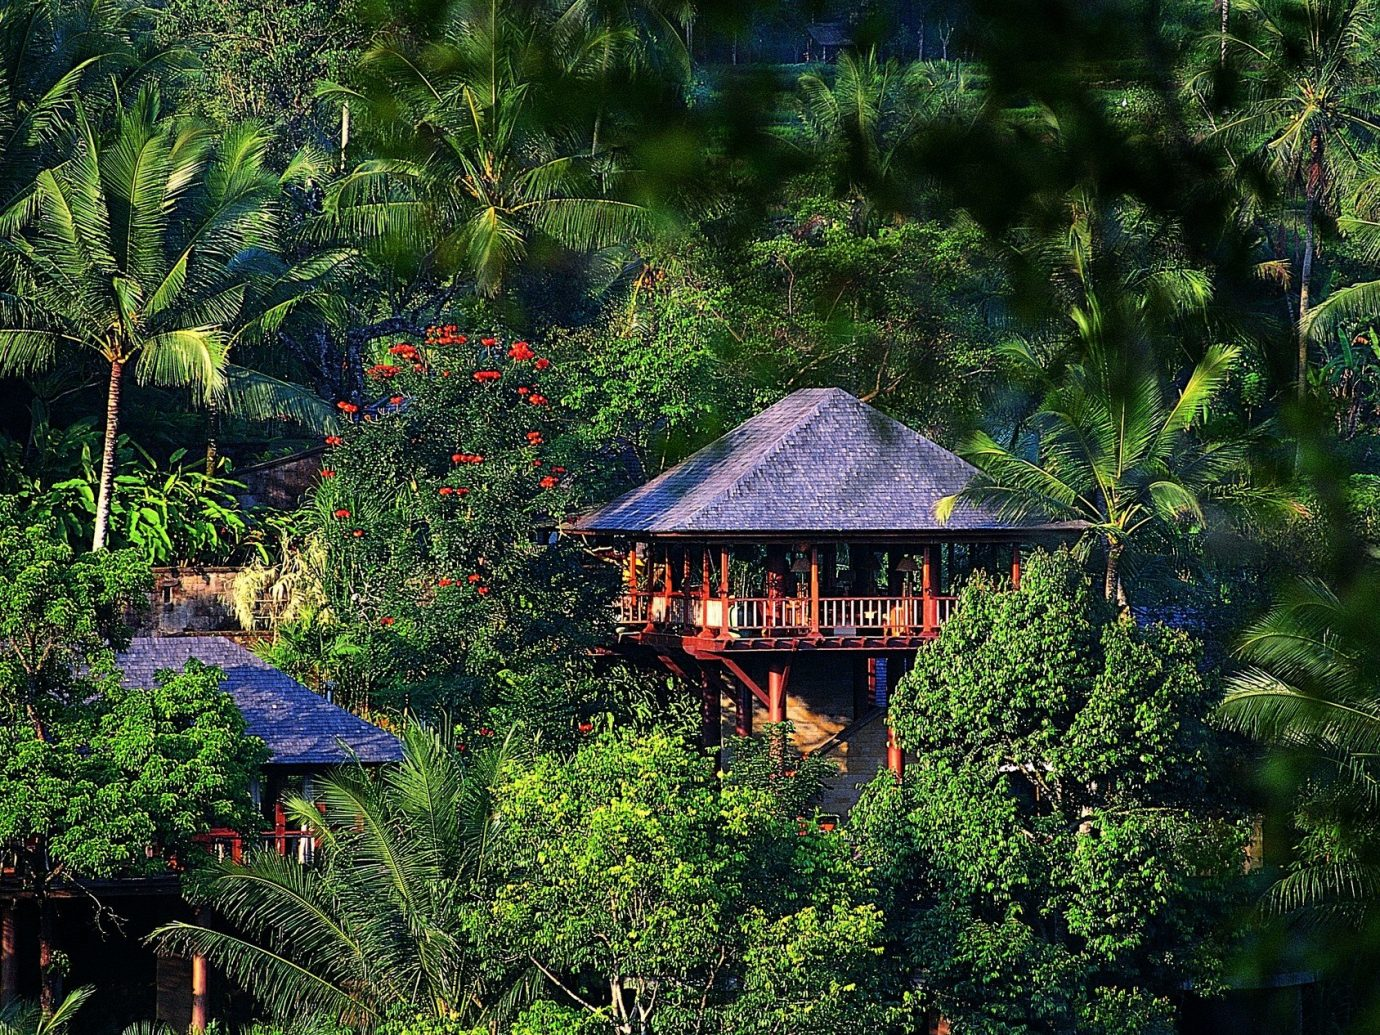 Health + Wellness Hotels Spa Retreats tree outdoor habitat Nature natural environment wilderness Forest rainforest botany Jungle woodland Garden tropics rural area flower hut botanical garden wooded wood area surrounded plant lush